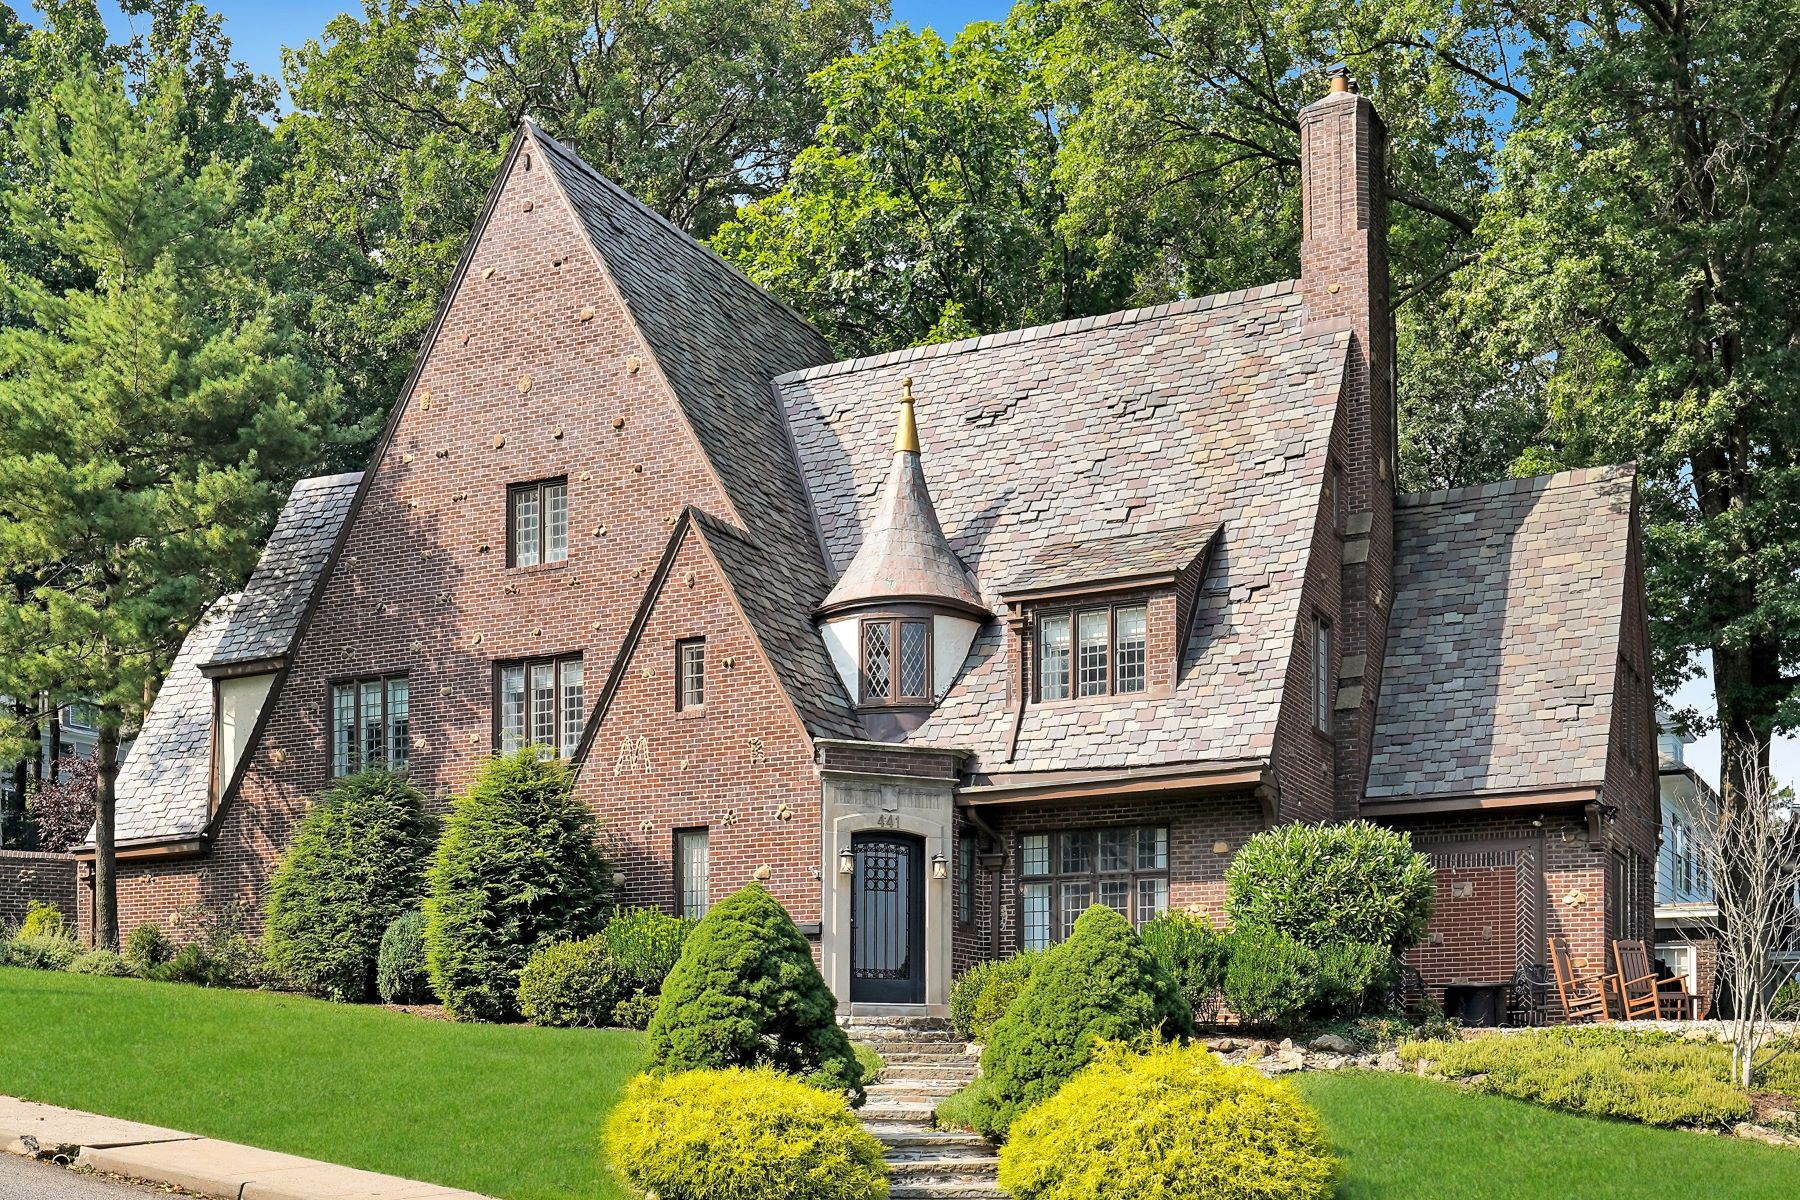 Single Family Homes for Sale at Iconic Tudor 441 Overhill Road, South Orange, New Jersey 07079 United States